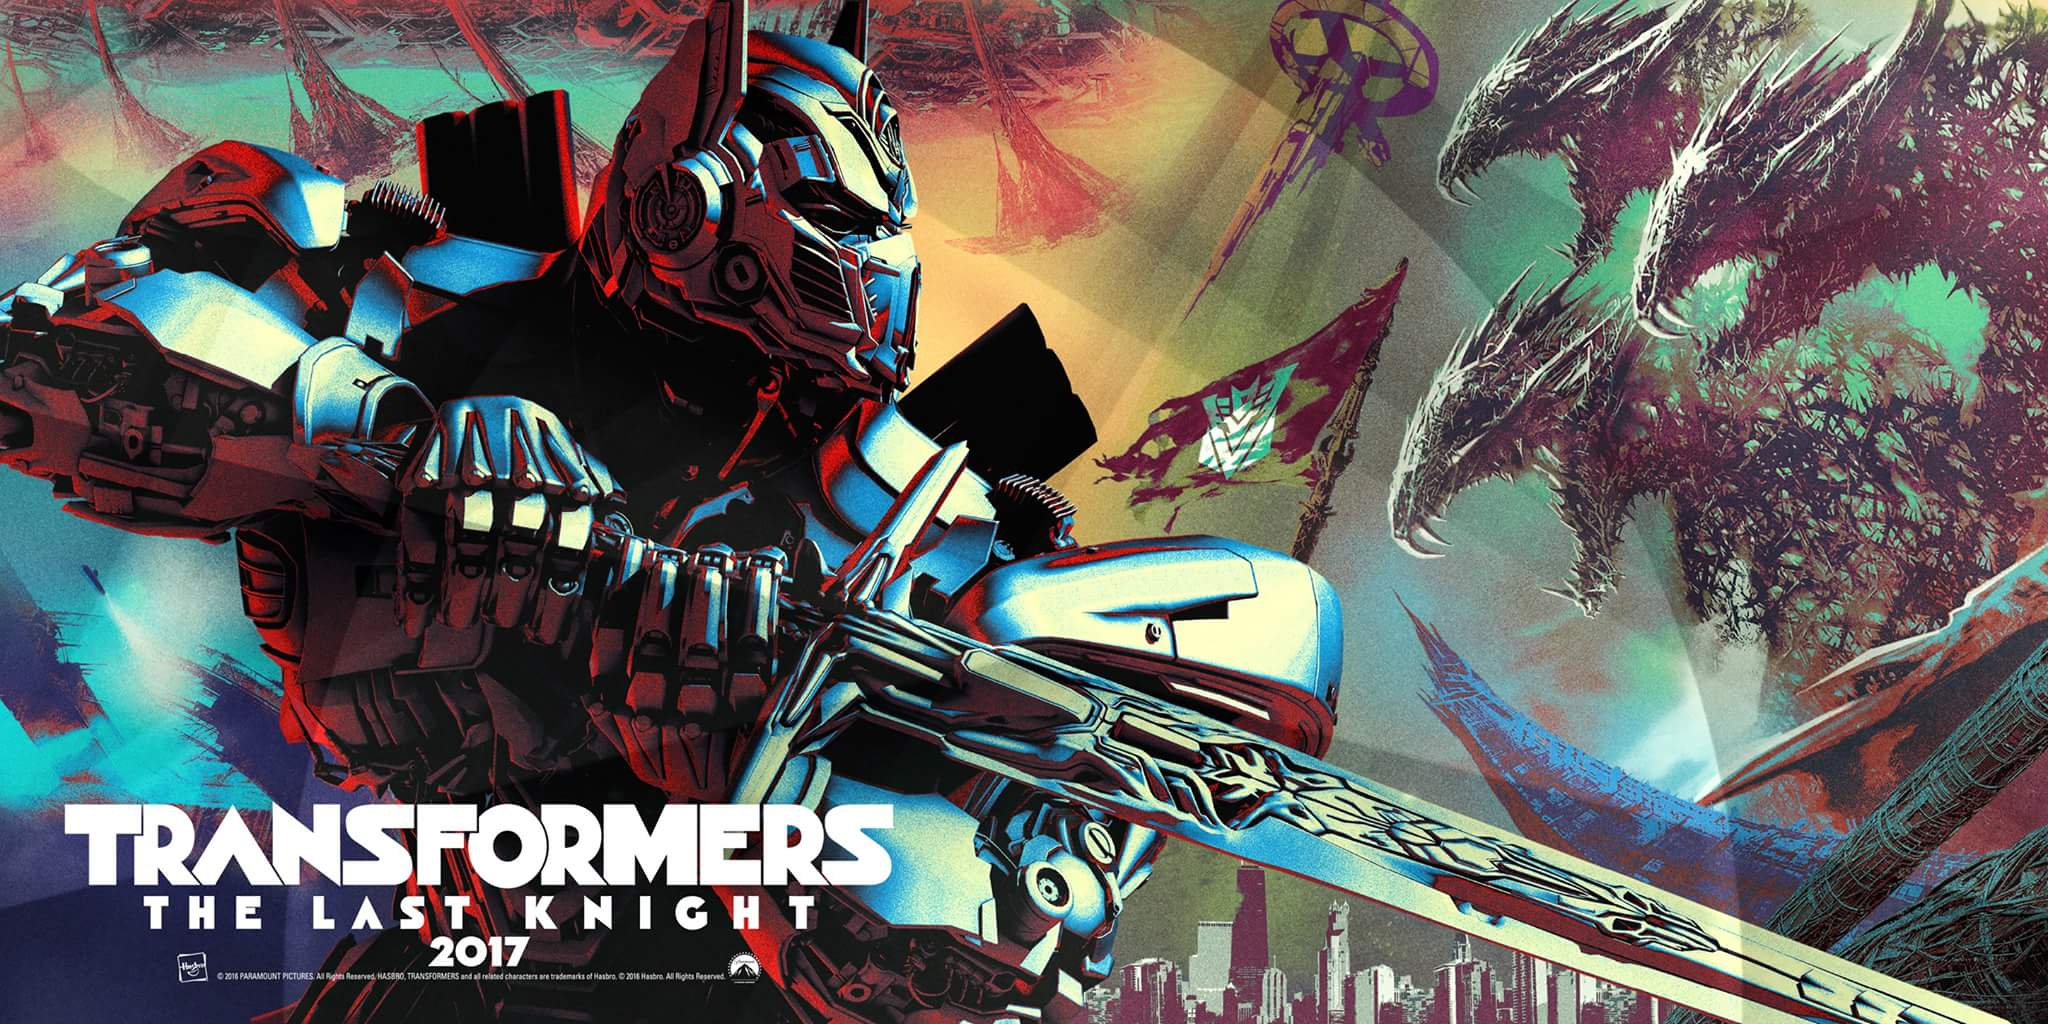 transformers-the-last-knight-poster-po